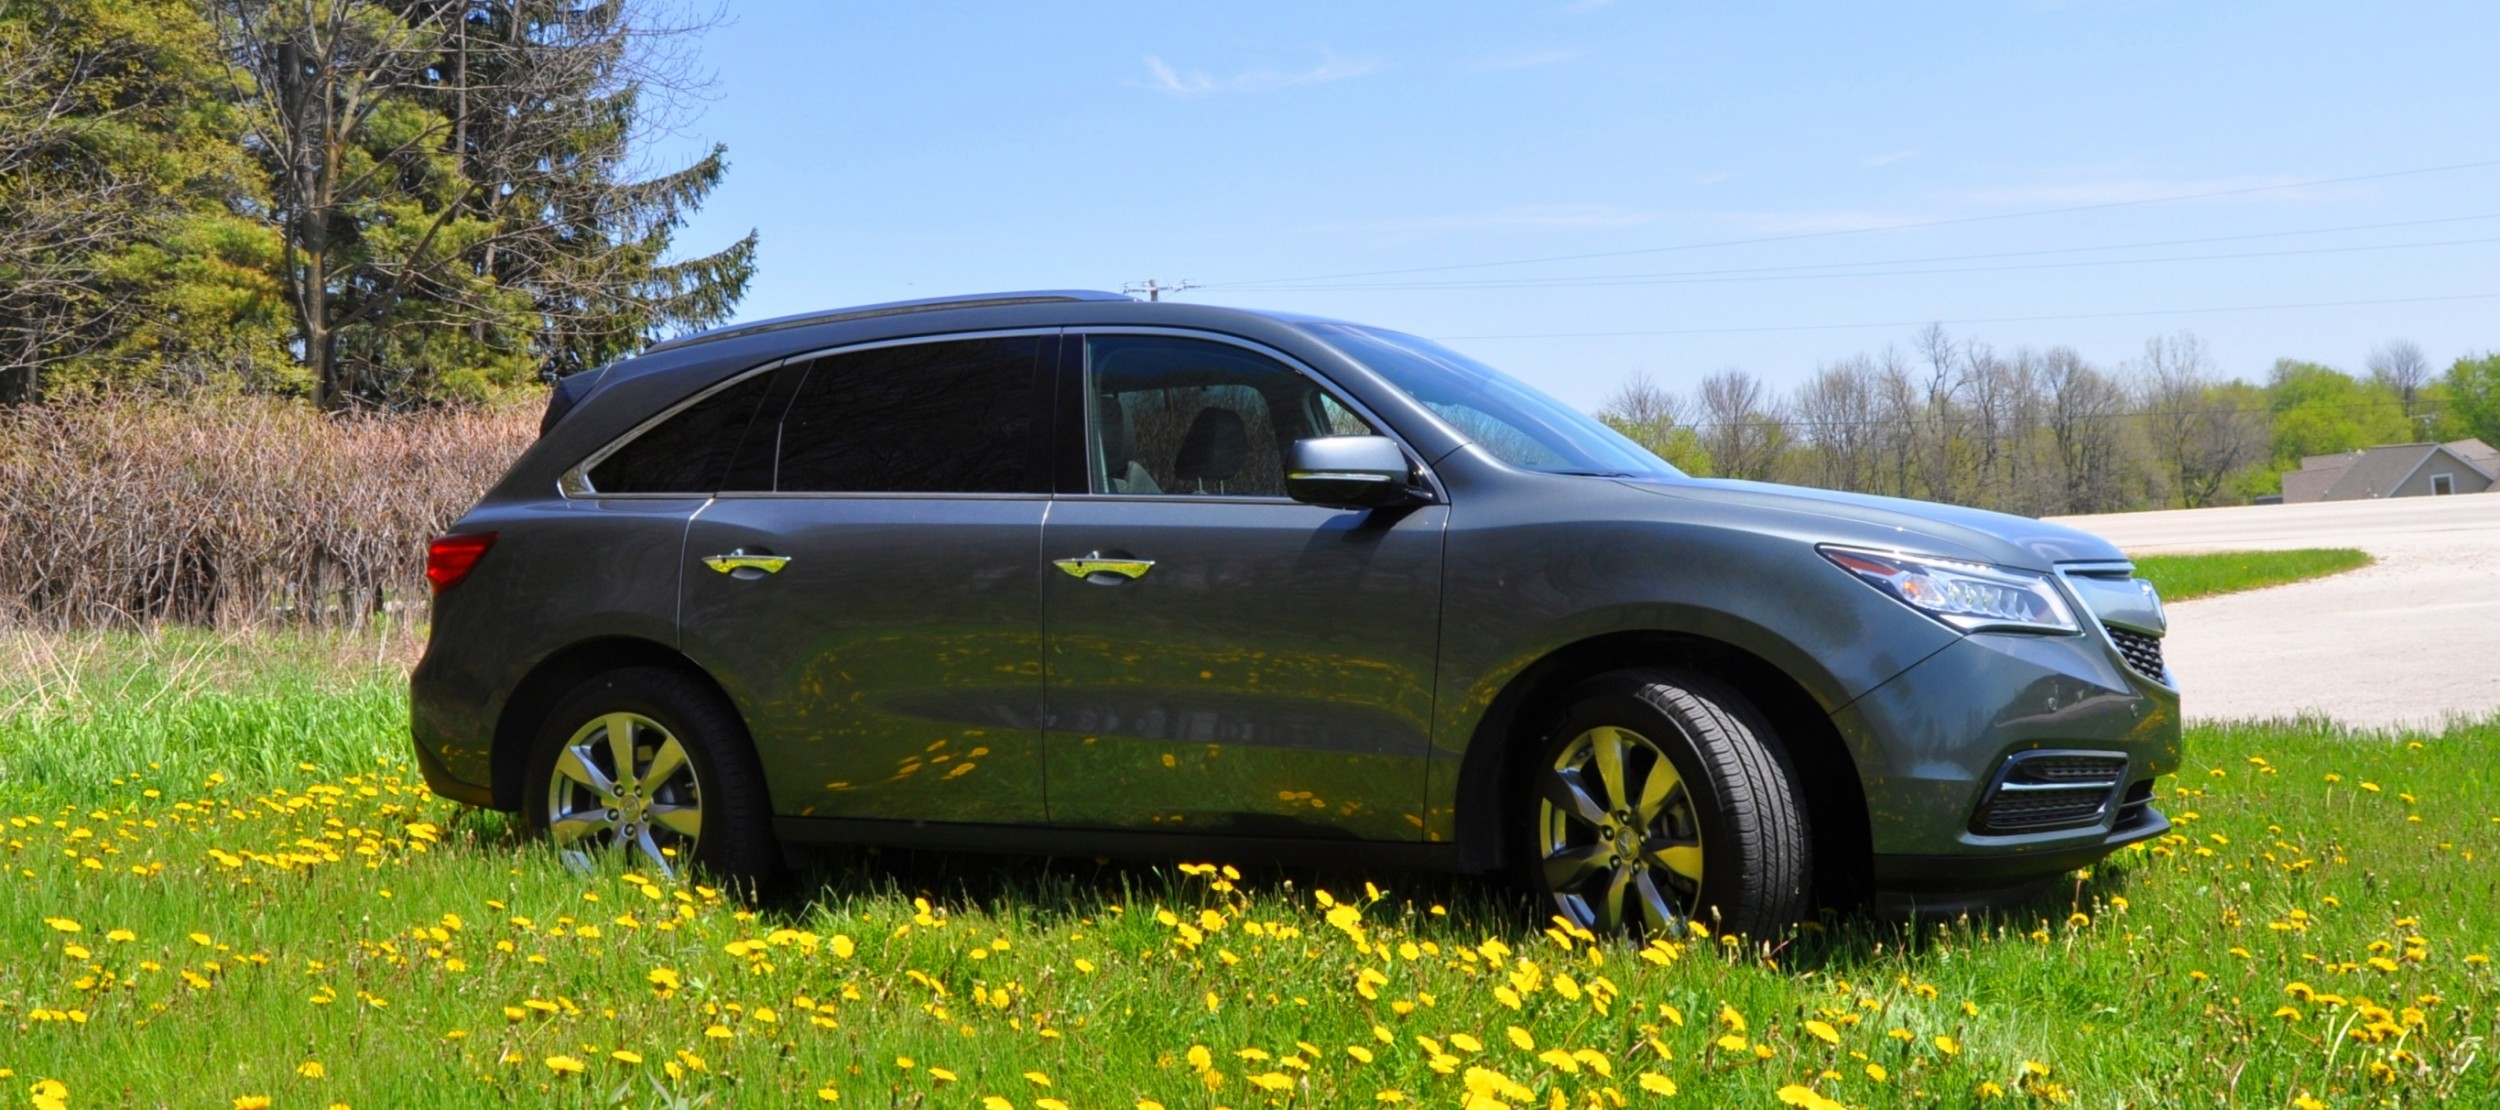 road test review 2014 acura mdx is premium and posh 7 seat cruiser 10